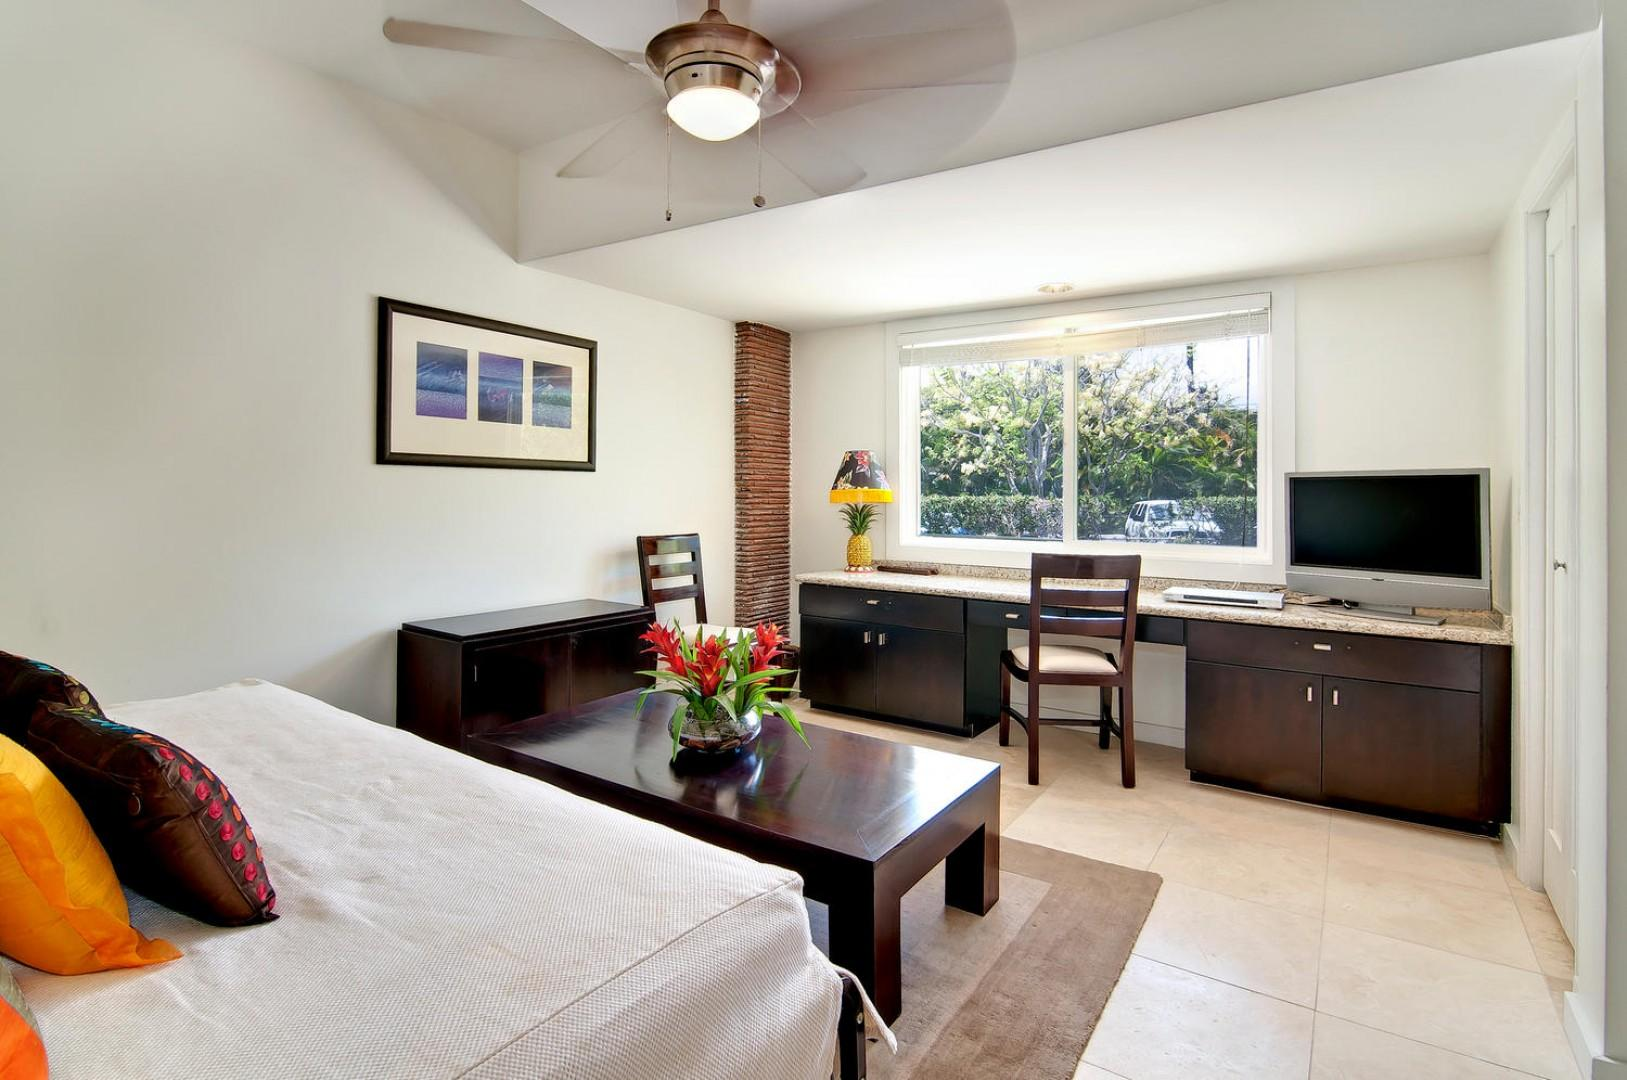 Room Four - Twin bed has been repalced with aKing bed, room sleeps two